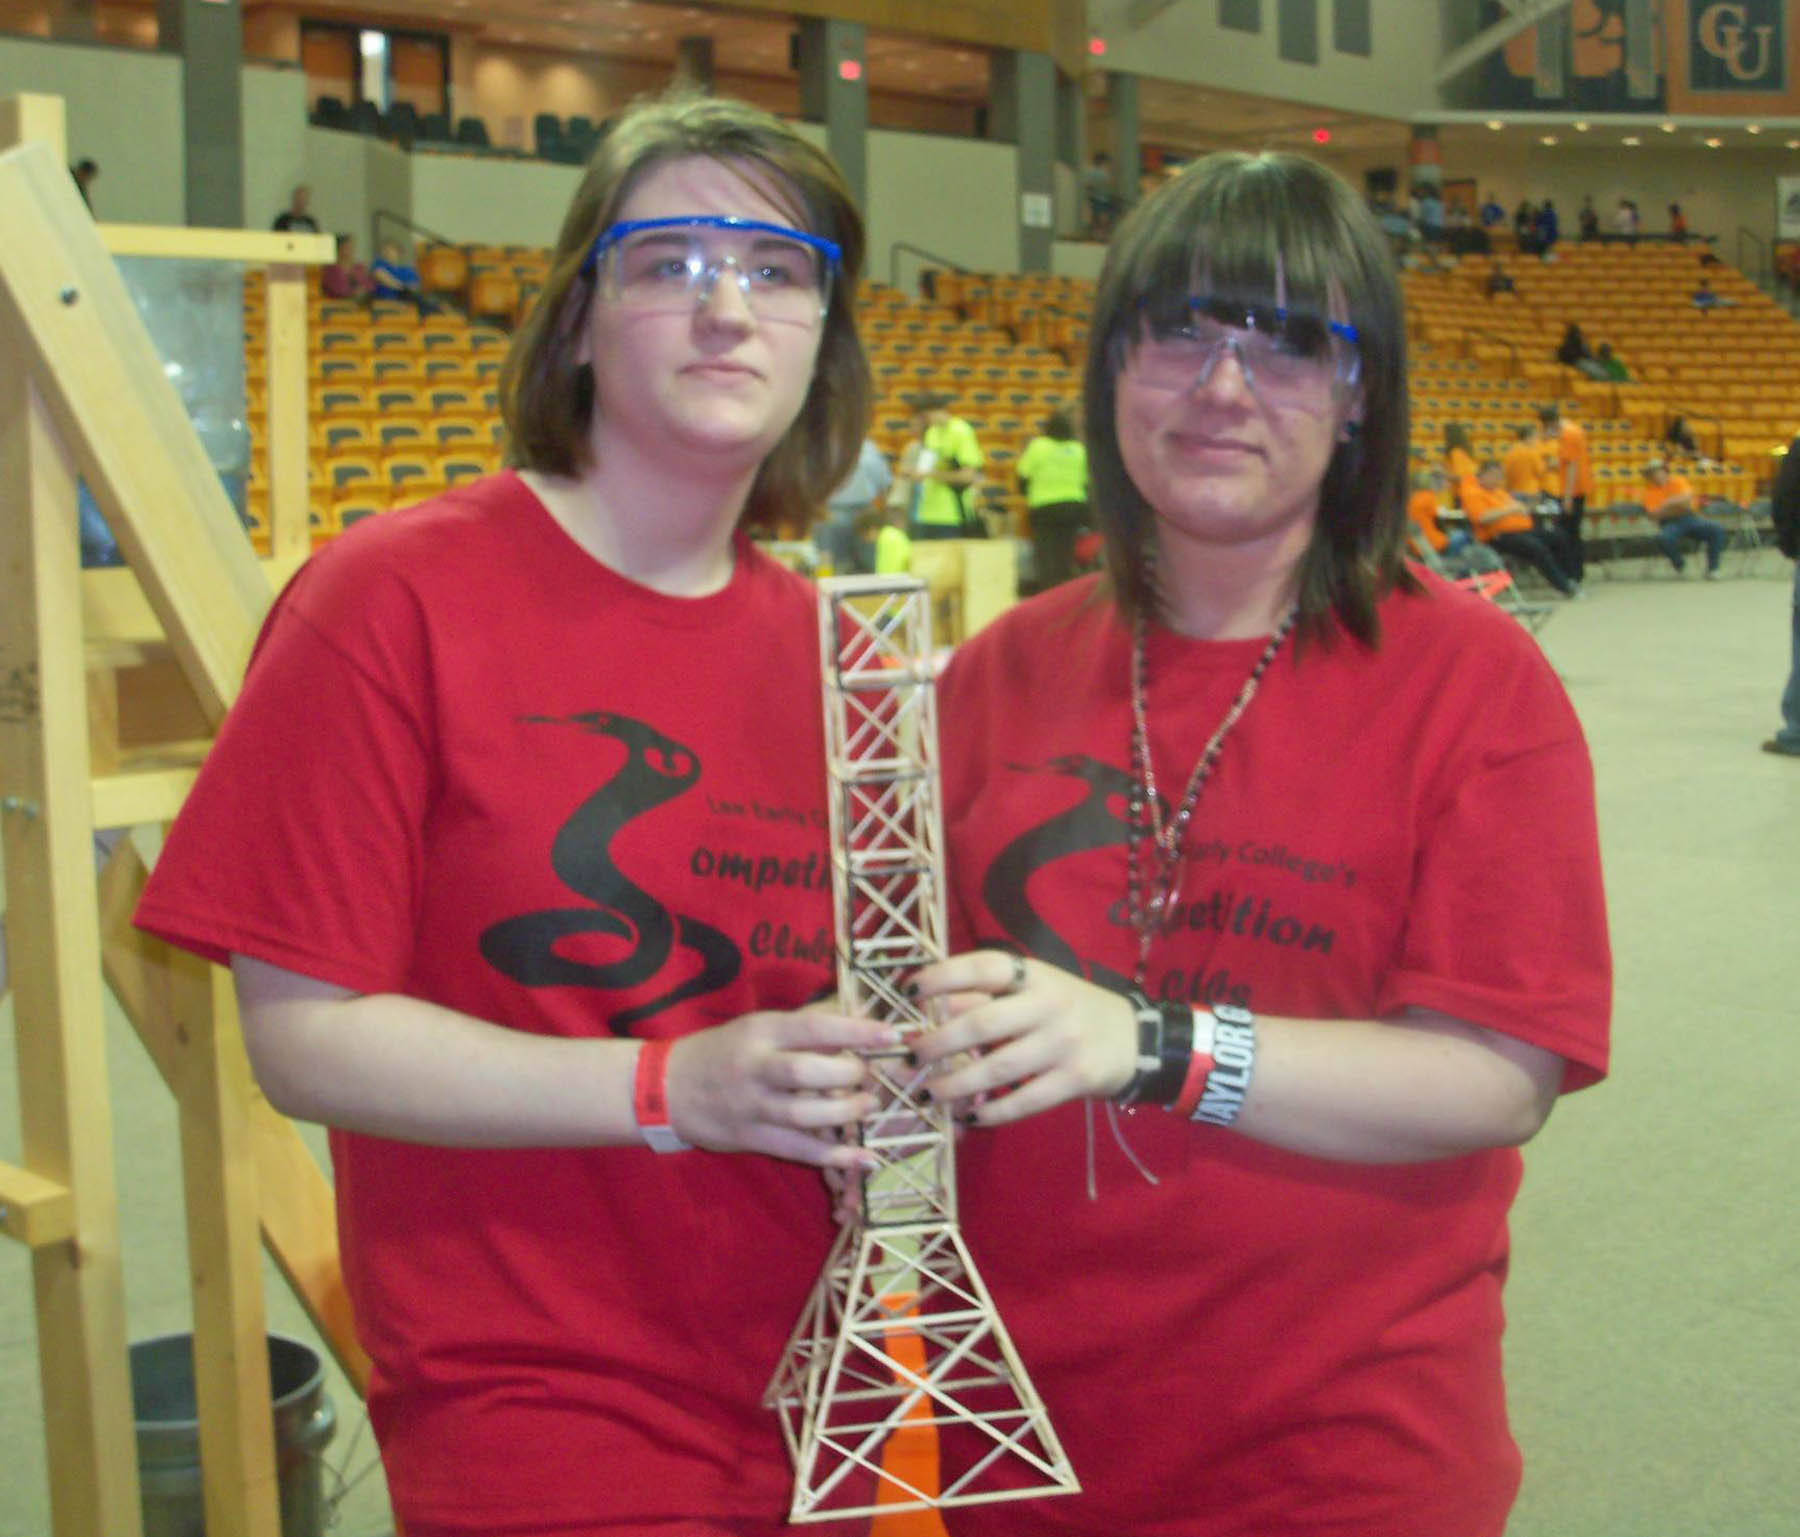 Click to enlarge,  Lee Early College students Kim Cherry (left) and Christa Rhinehart show off their second-place winning tower for the 'Towers' construction competition at the Feb. 18 Regional Science Olympiad Competition, held at Campbell University. The tower could only be constructed of wood and glue and had to be designed to hold a minimum of 15 kilograms. LEC's 17-member Science Olympiad team took second place overall at the competition, earning the right to go on to the North Carolina State Science Olympiad Tournament in April. LEC placed in nine of the 23 regional events, earning one first-place, two second-place, three third-place and four fourth-place medals.